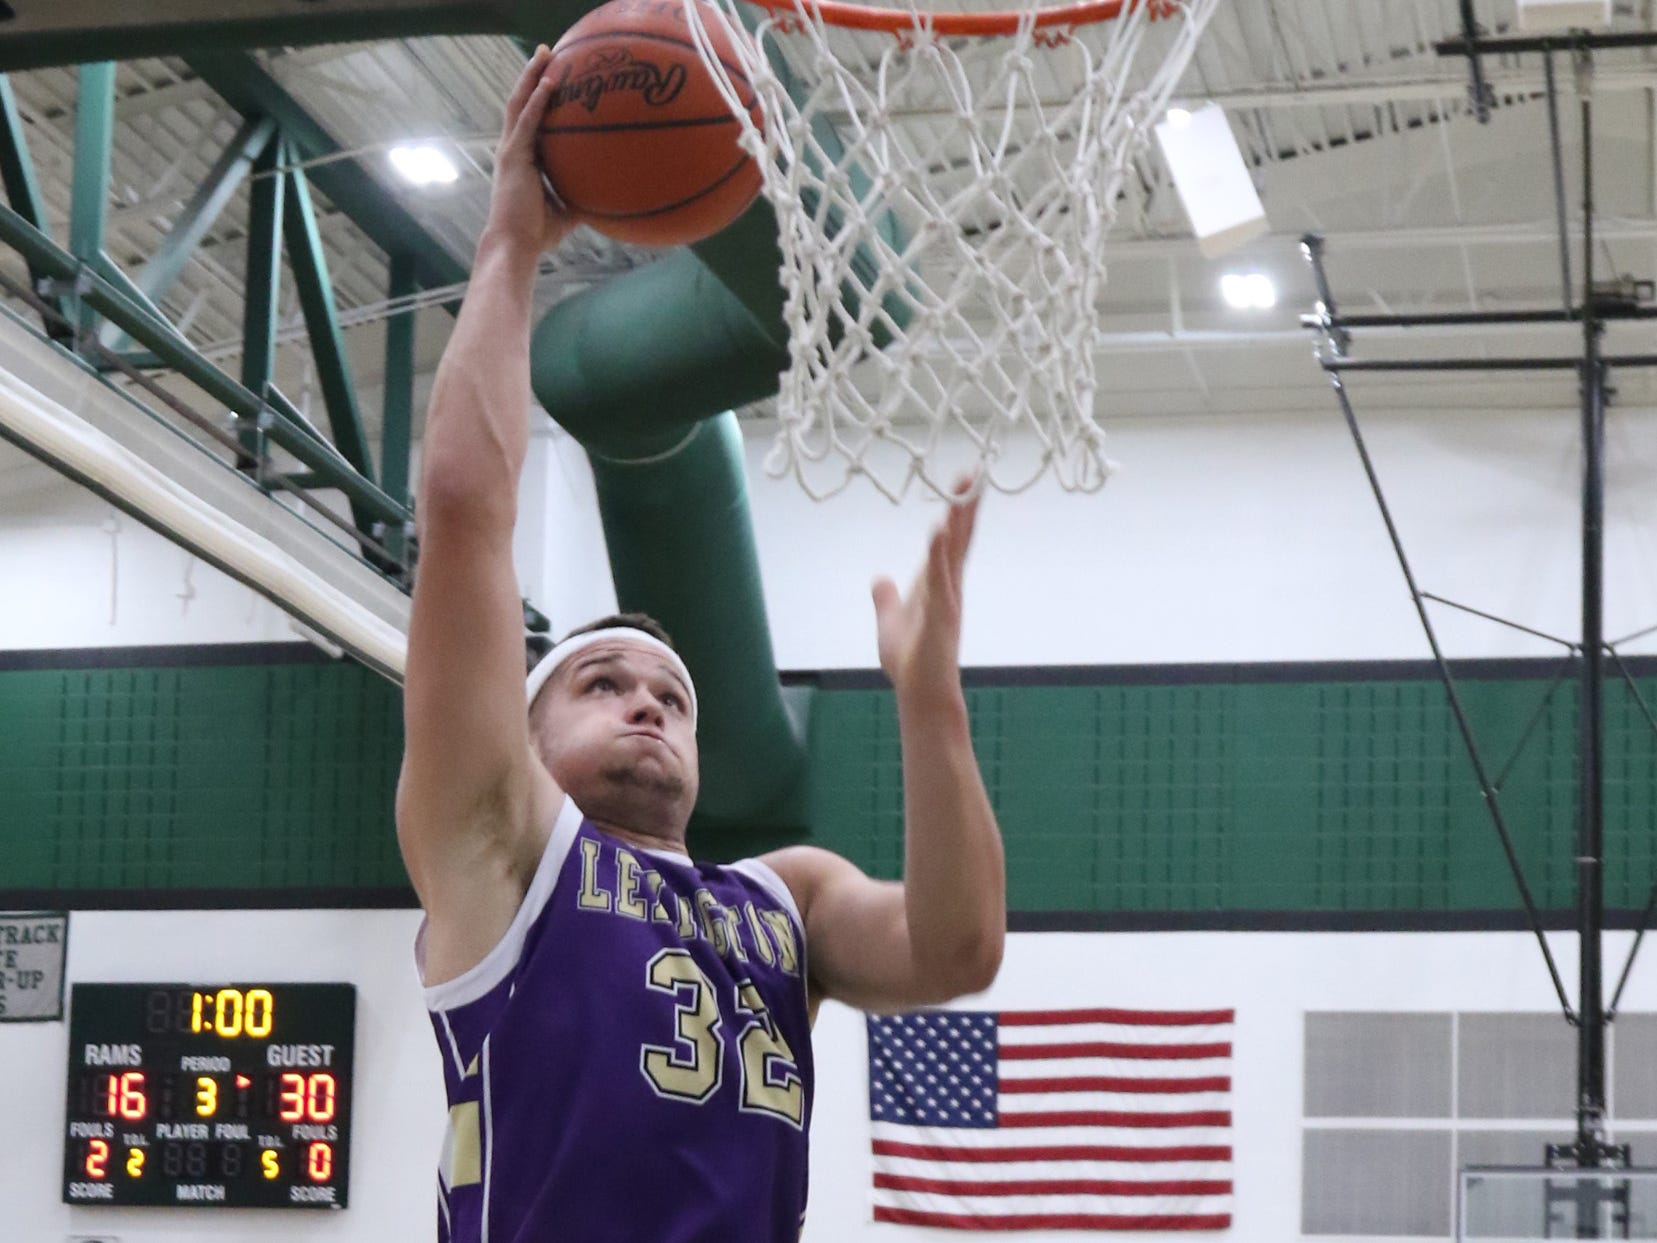 Lexington's Cade Stover dunks the ball while playing at Madison on Friday.